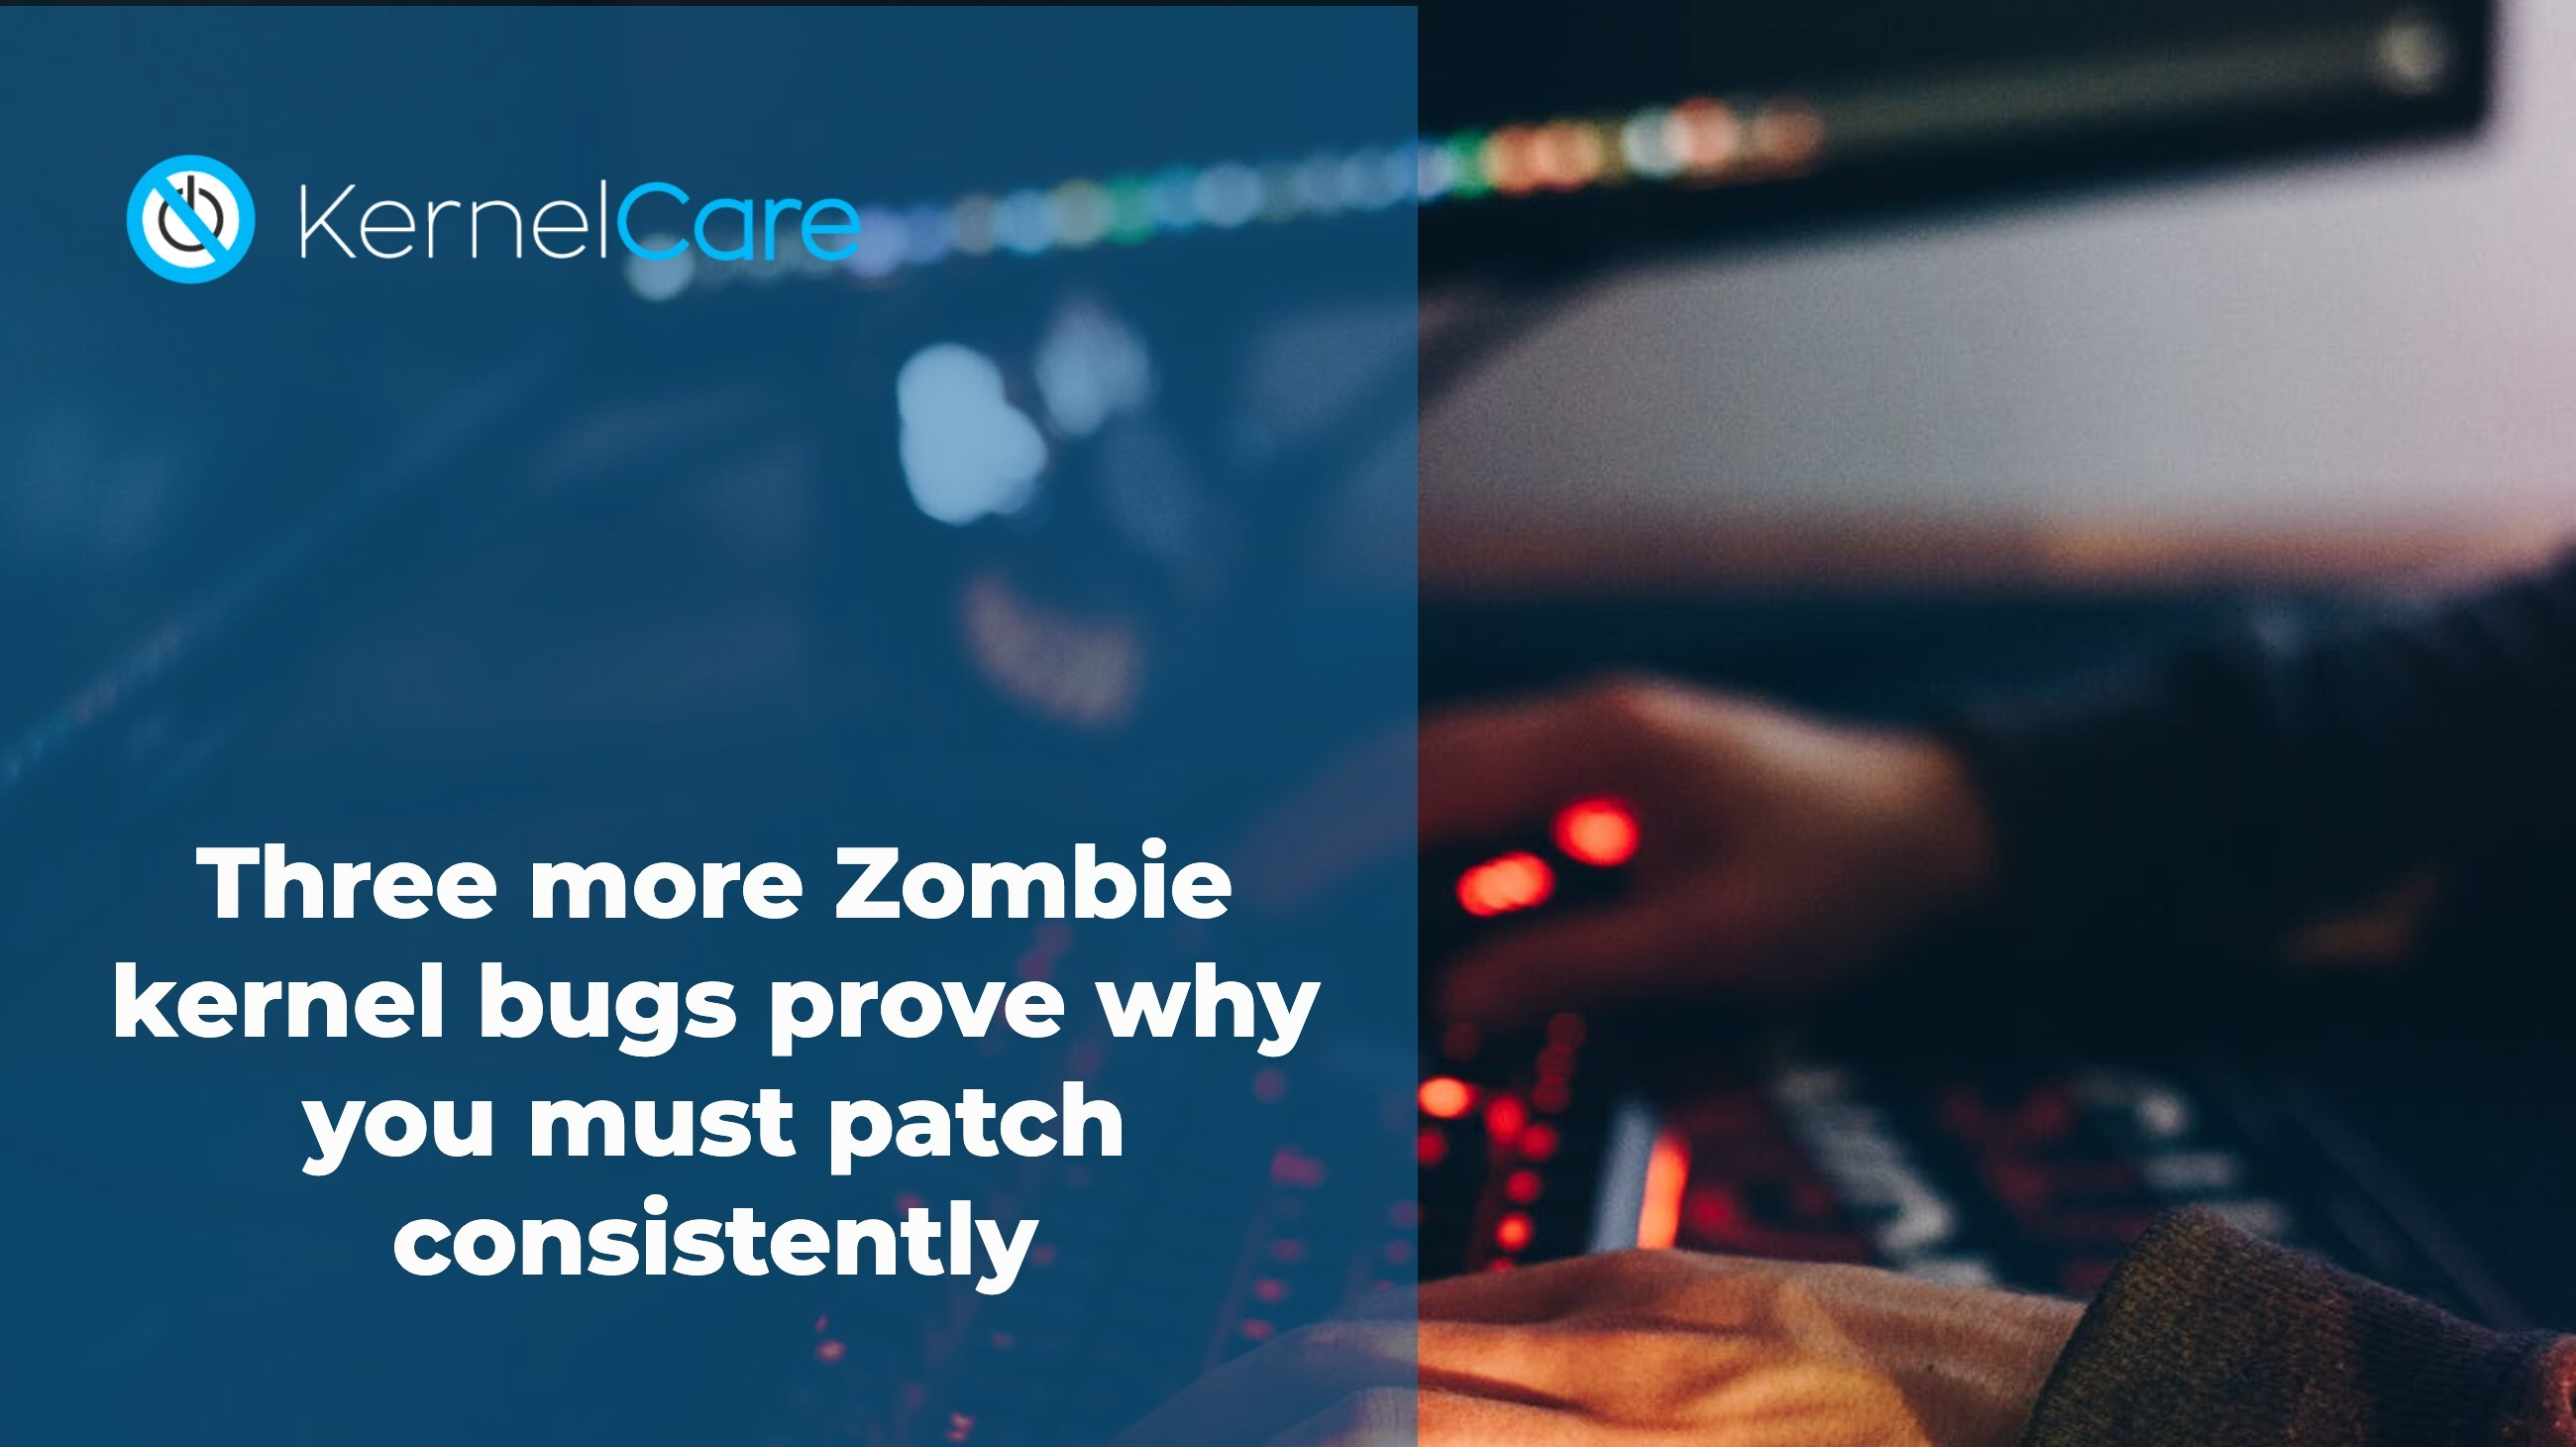 Three more Zombie kernel bugs prove why you must patch consistently